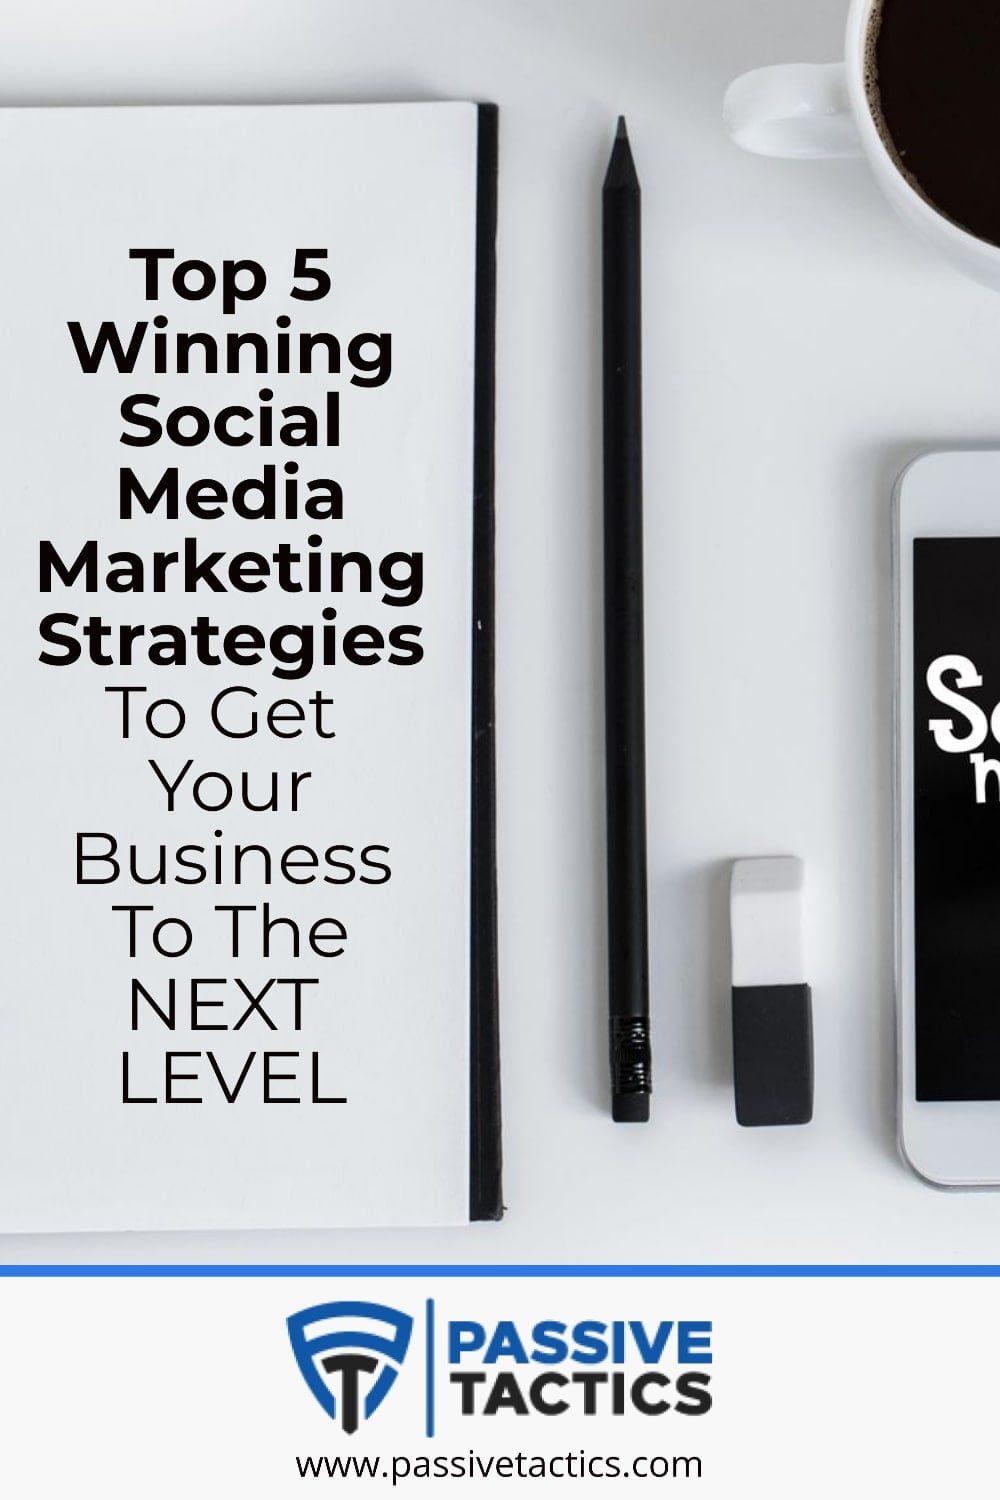 Top 5 WINNING social media marketing strategies to get Your Business to the NEXT LEVEL